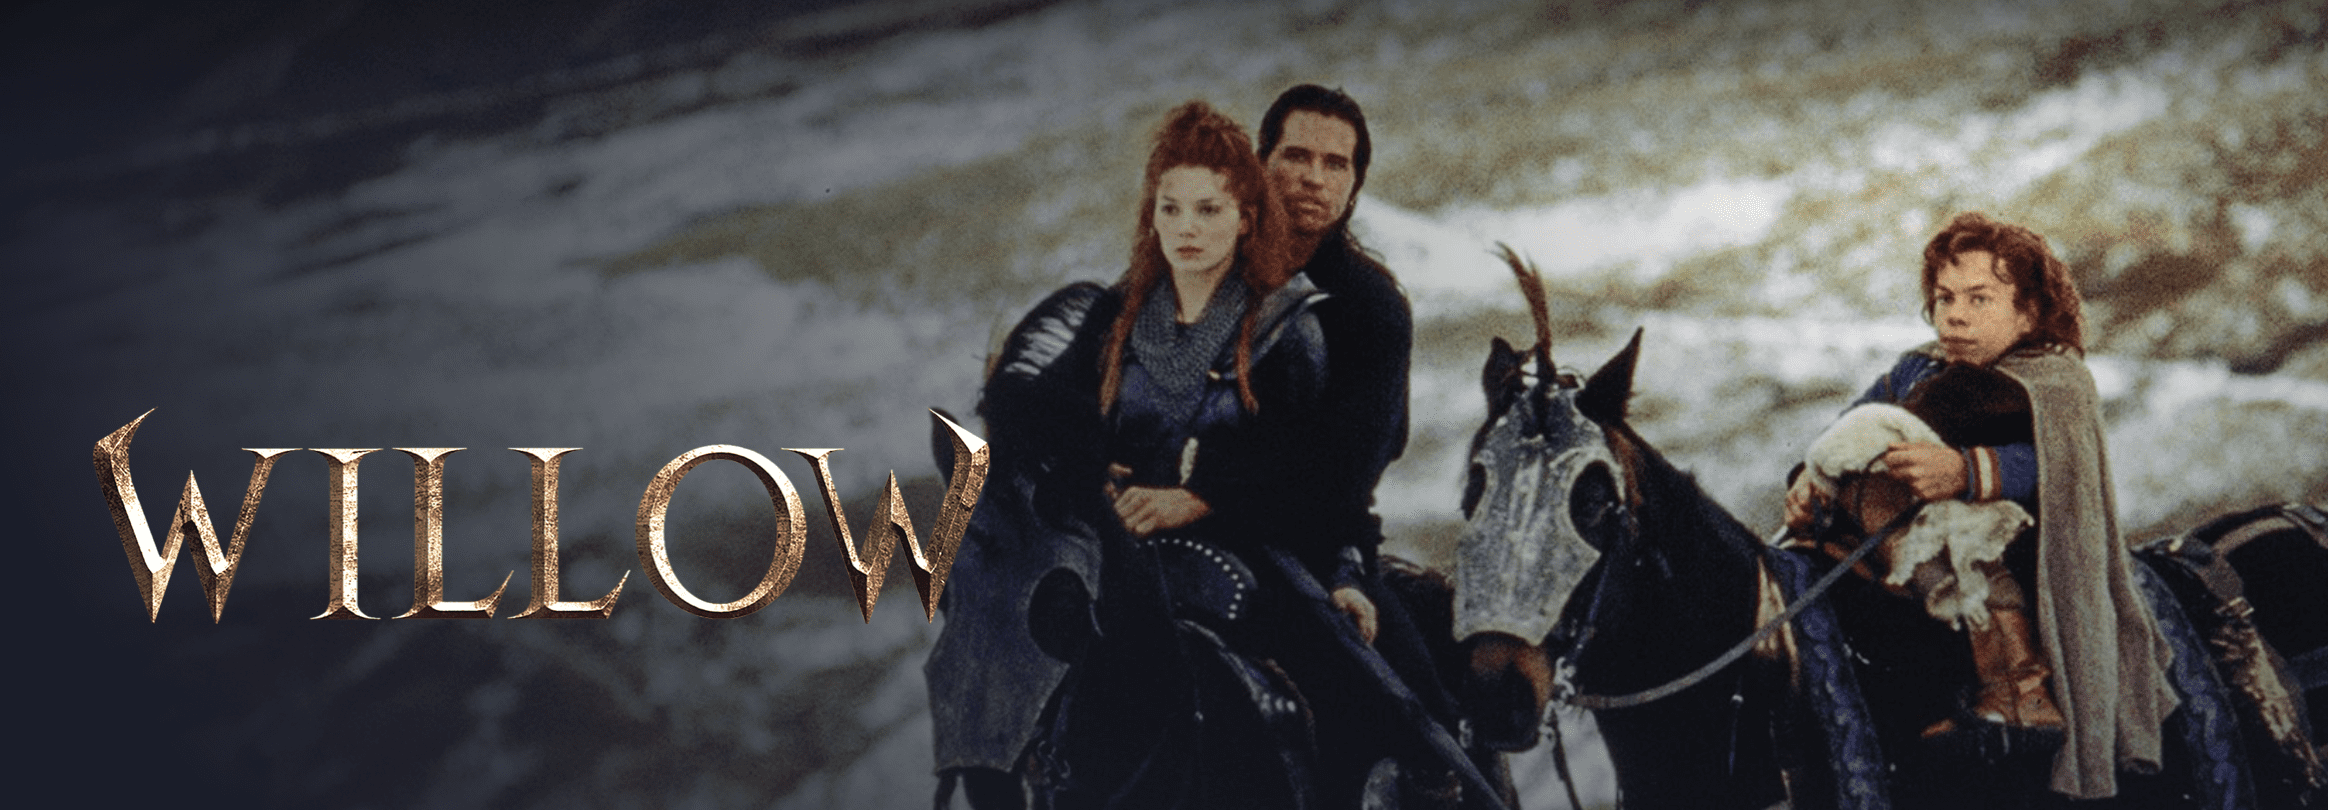 Willow Disney Plus Sequel Series Coming from Lucasfilm! (Details)